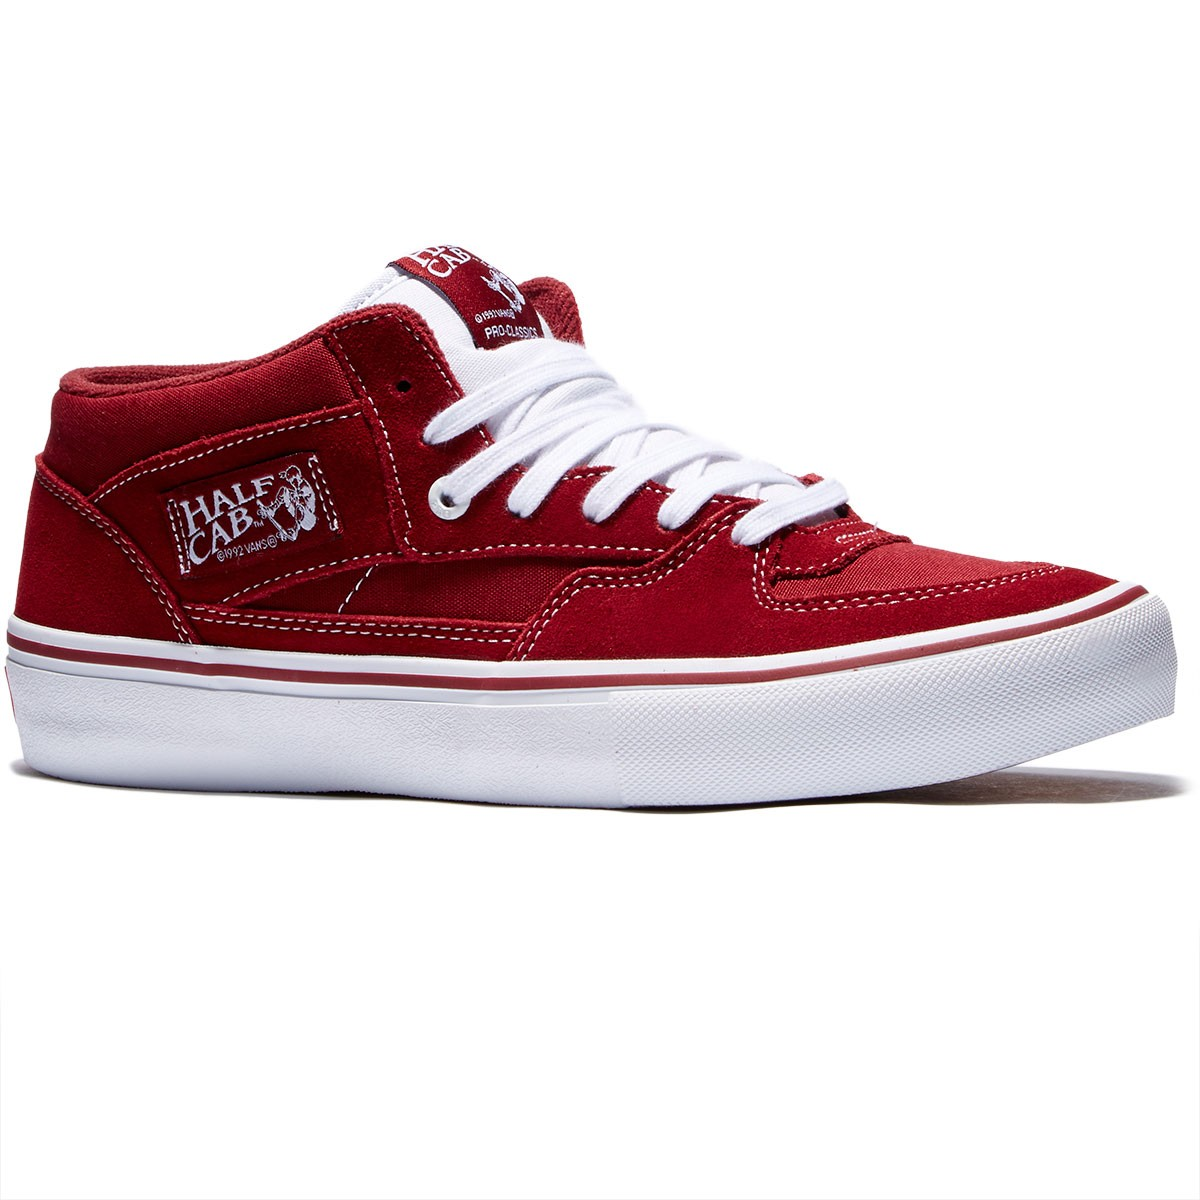 vans half cab pro color red